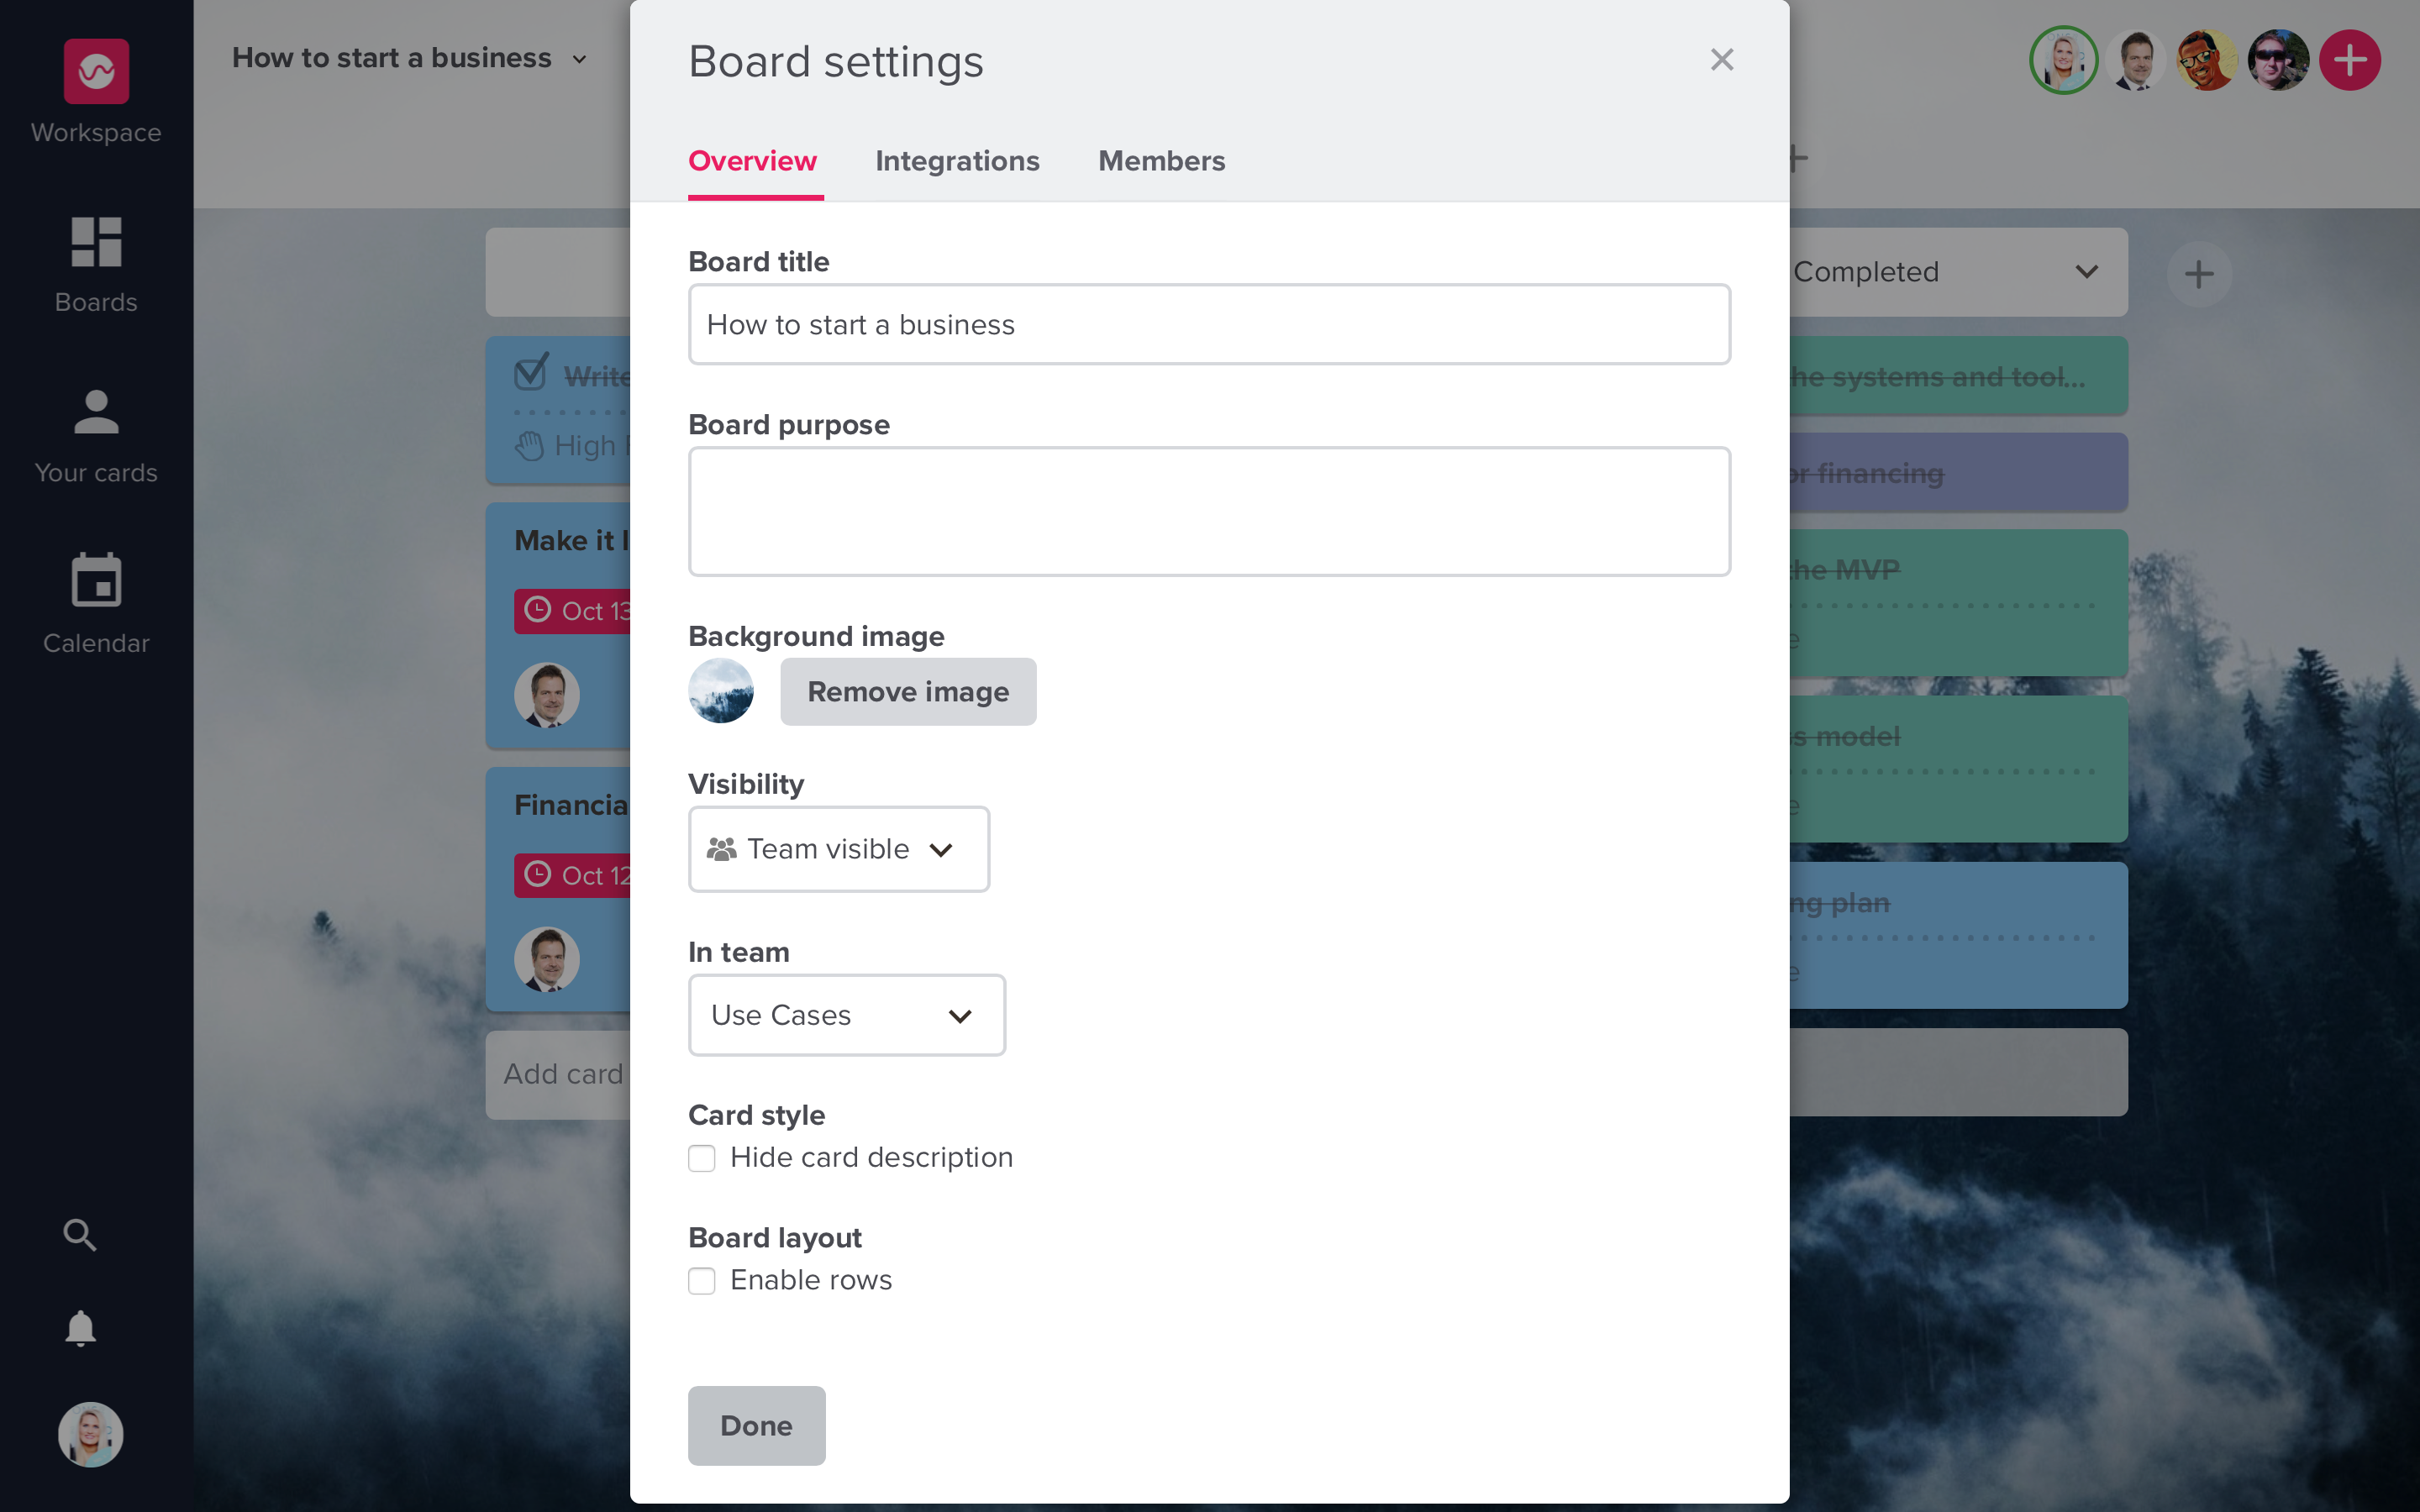 Upwave - Board settings